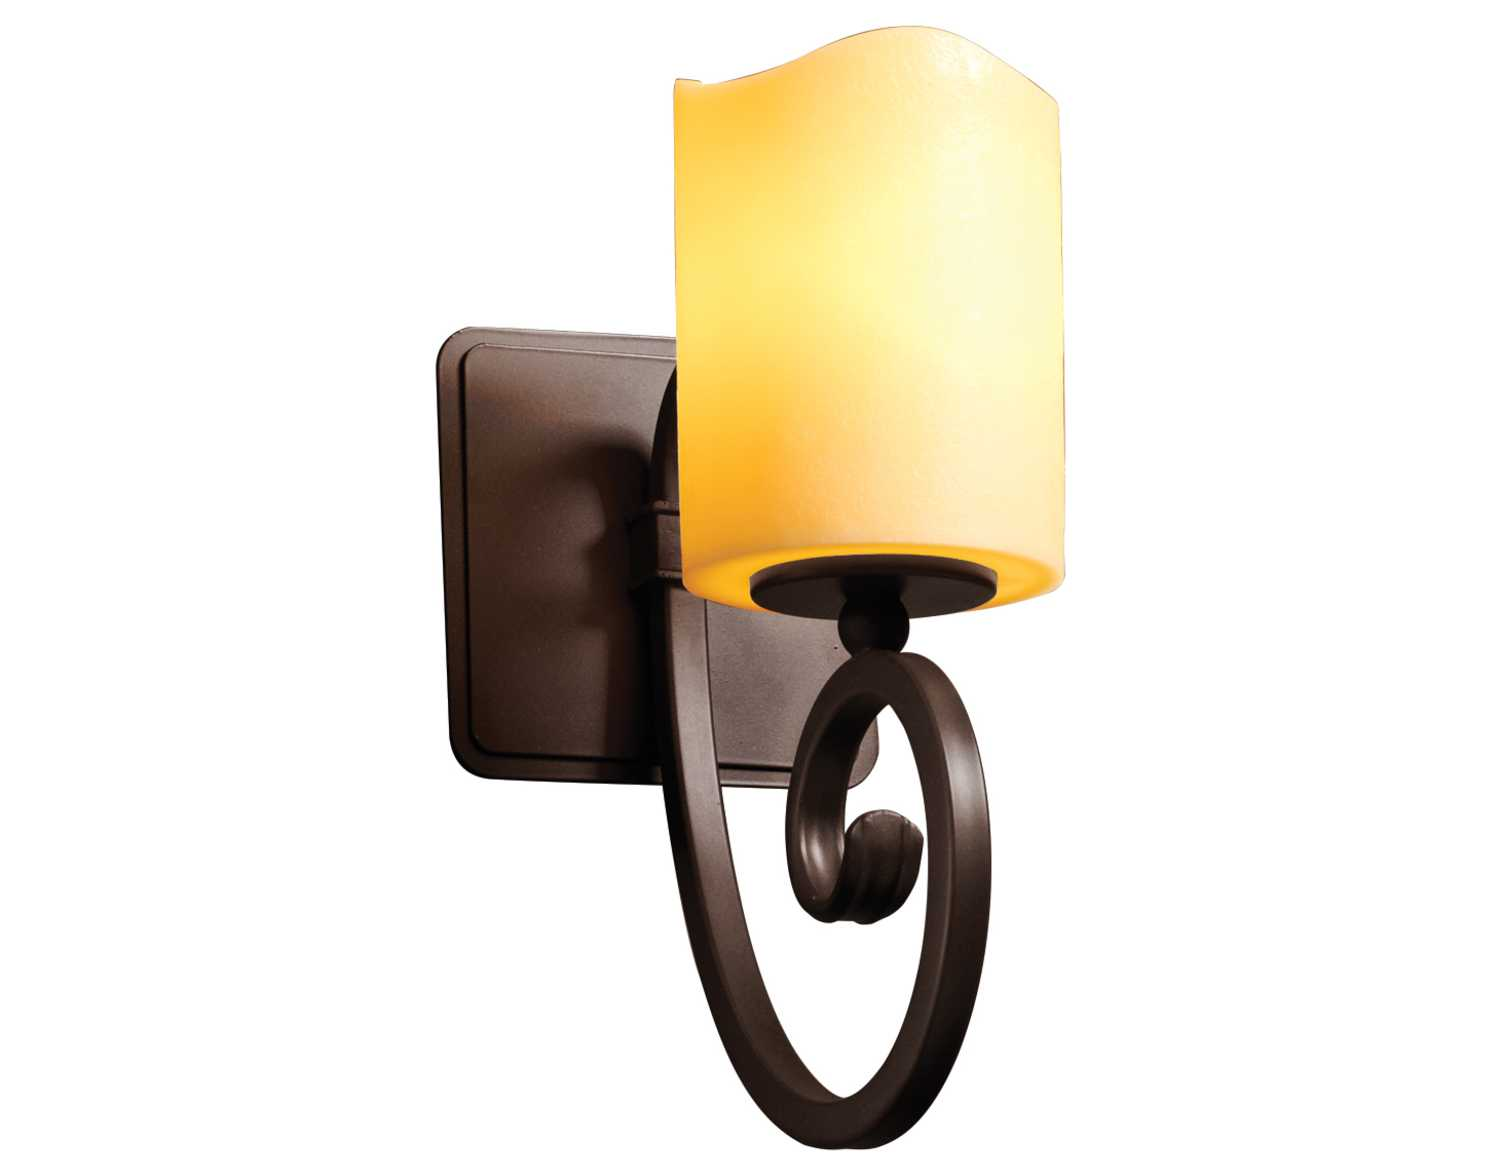 Fake Candle Wall Lights : Justice Design Group Candlearia Victoria Faux Candle Resin Wall Sconce CNDL-8571